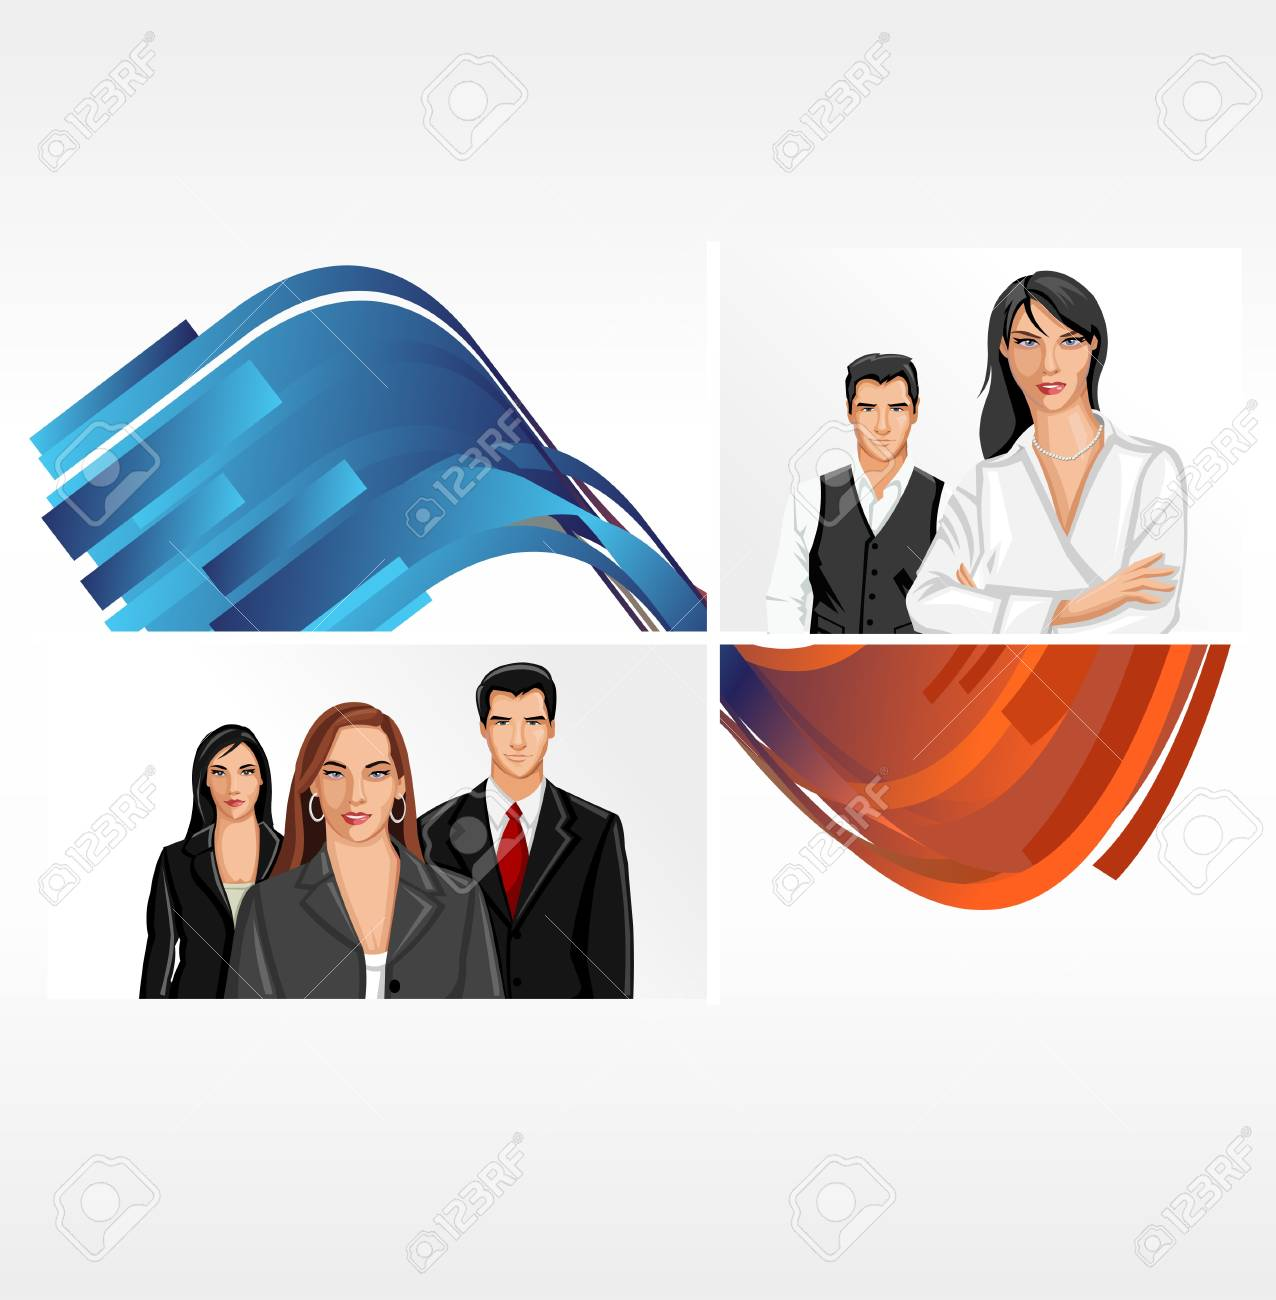 Blue and orange template for advertising brochure with business people Stock Vector - 16904402